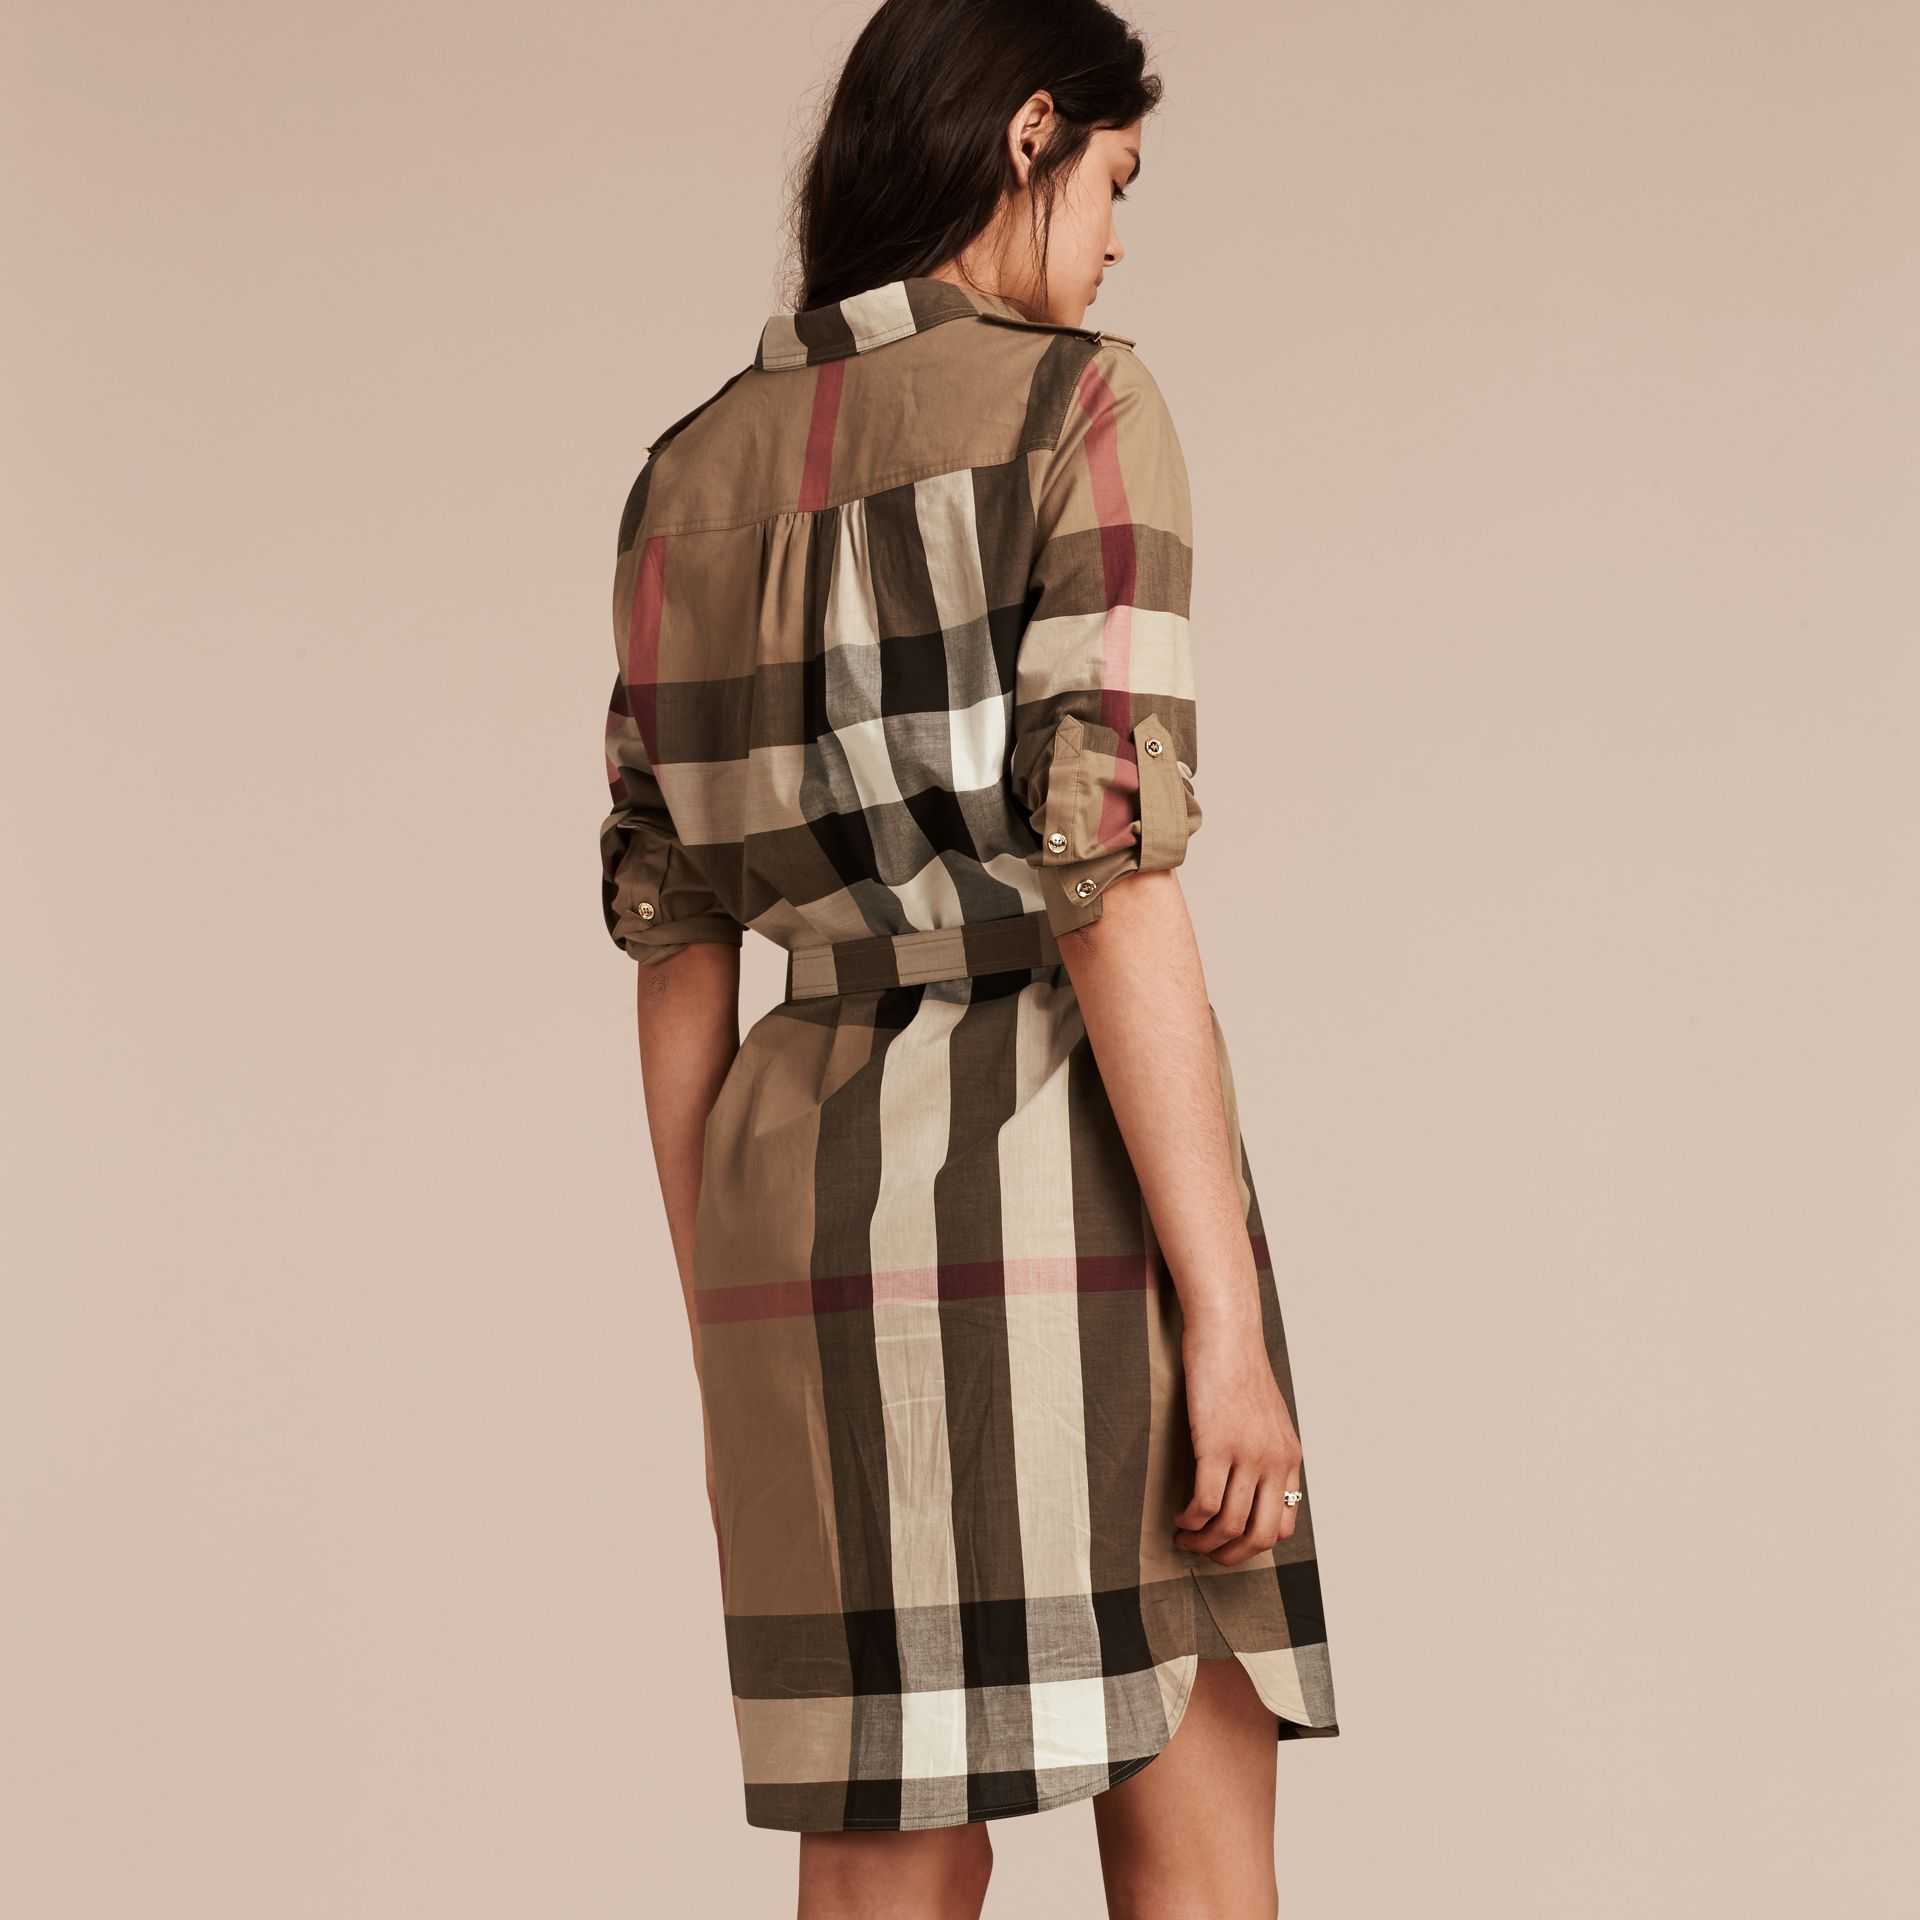 Taupe brown Check Cotton Shirt Dress Taupe Brown - gallery image 3